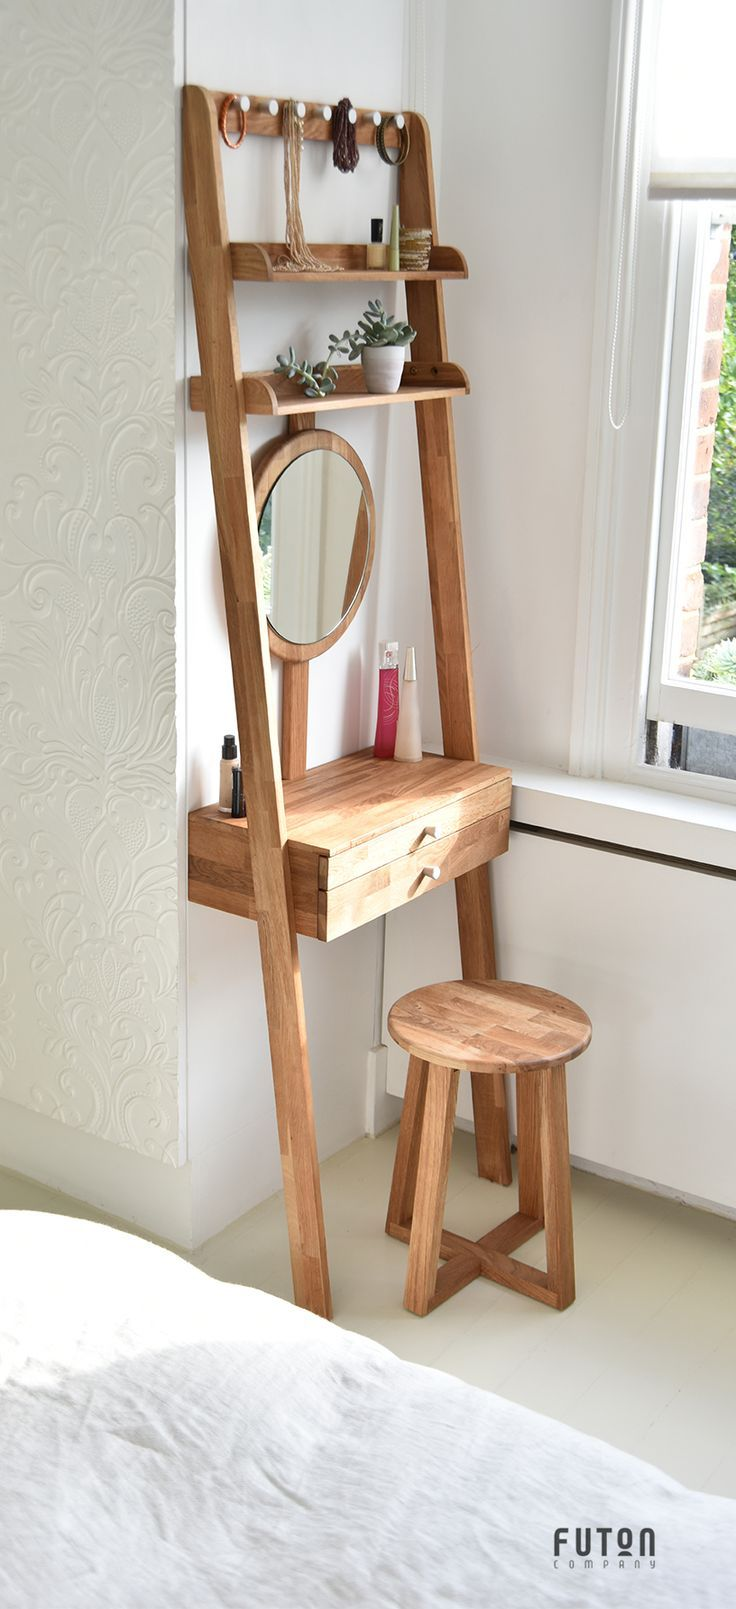 Oak Leaning Mini Dressing Table - Designed to simply lean against the wall, this clever invention is easily moved around, ideal for small space living. What's more, the mirror can be adjusted to accommodate any height.